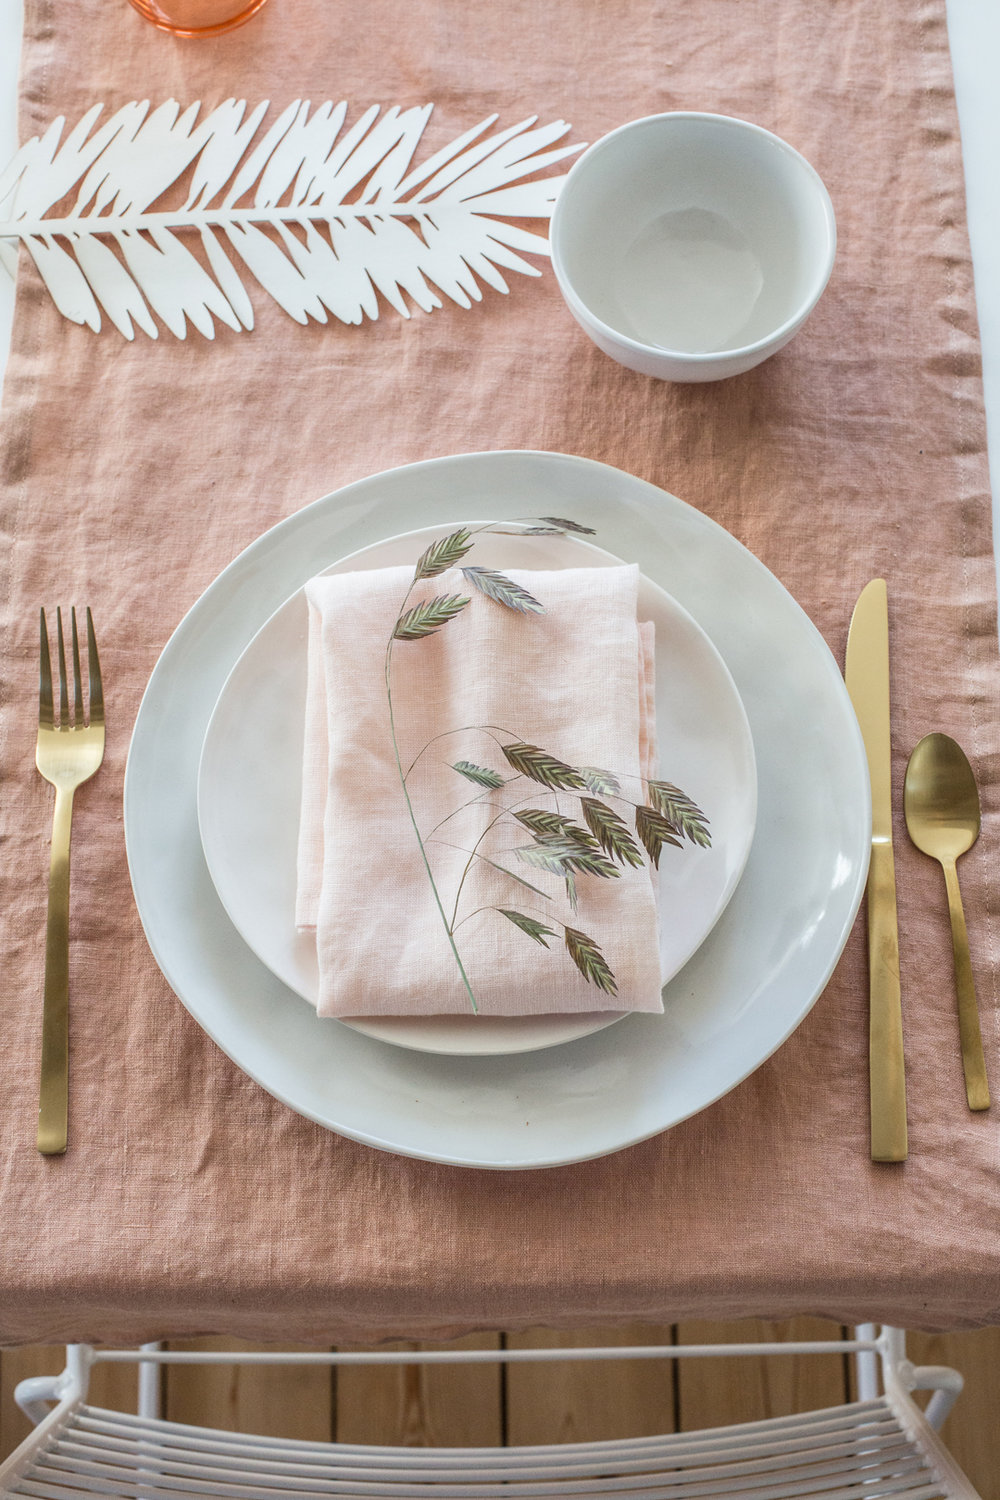 I love the table linens, the apricot runner with the pink napkins - they are really gorgeous together.